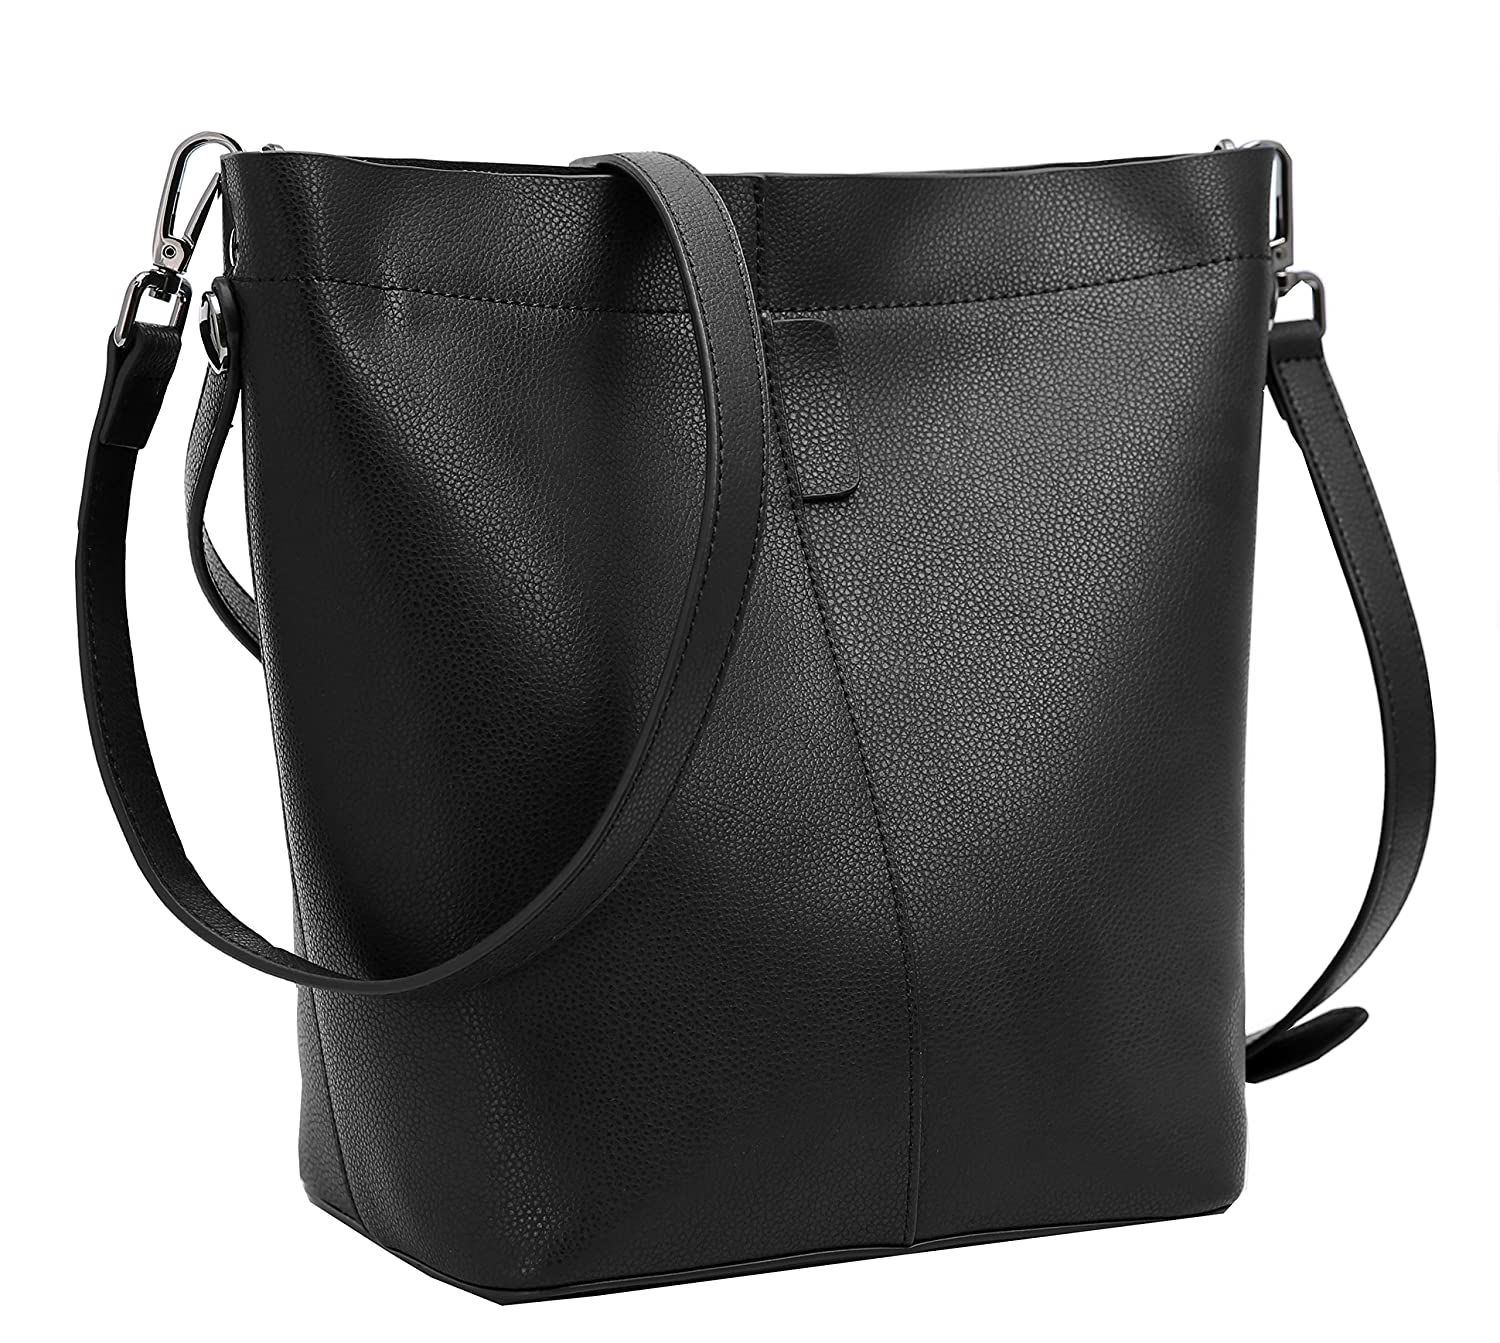 427e43d968 Amazon.com  Iswee Womens Leather Bucket Bag Hobo Shoulder Handbags  Top-handle Tote Bags Satchel Designer Purse Crossbody Bag for Ladies  (Black)  Shoes